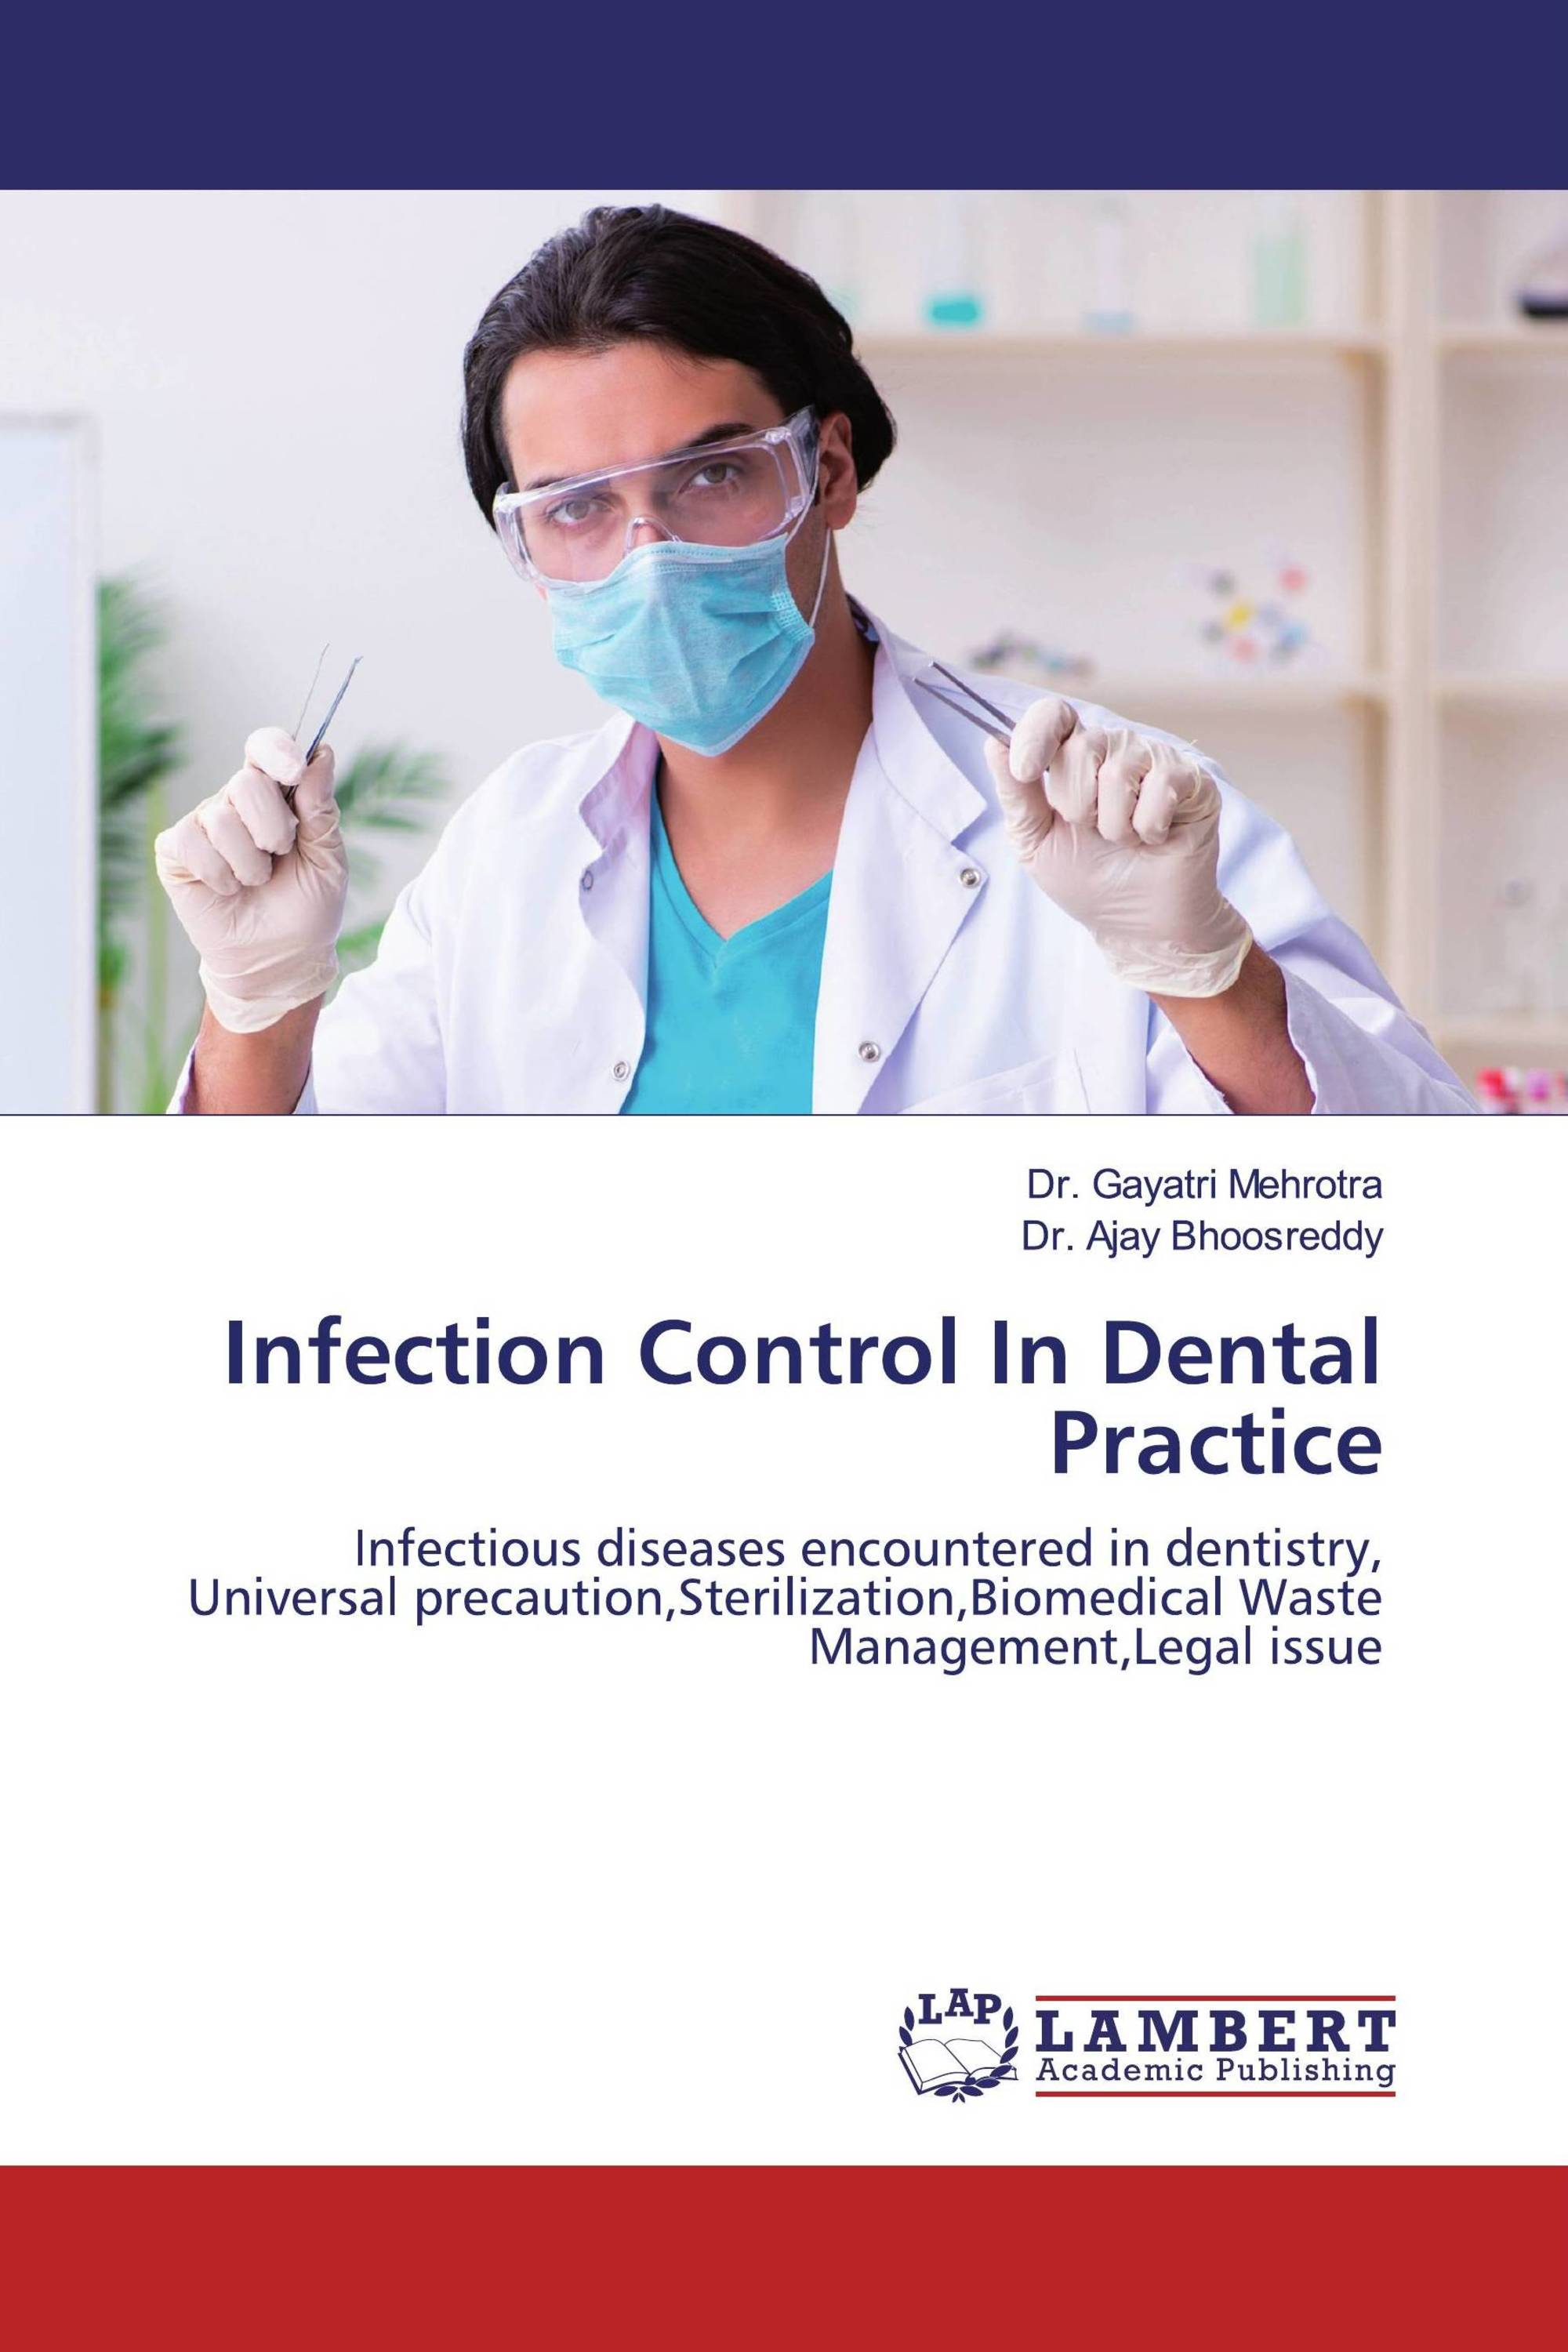 Infection Control In Dental Practice